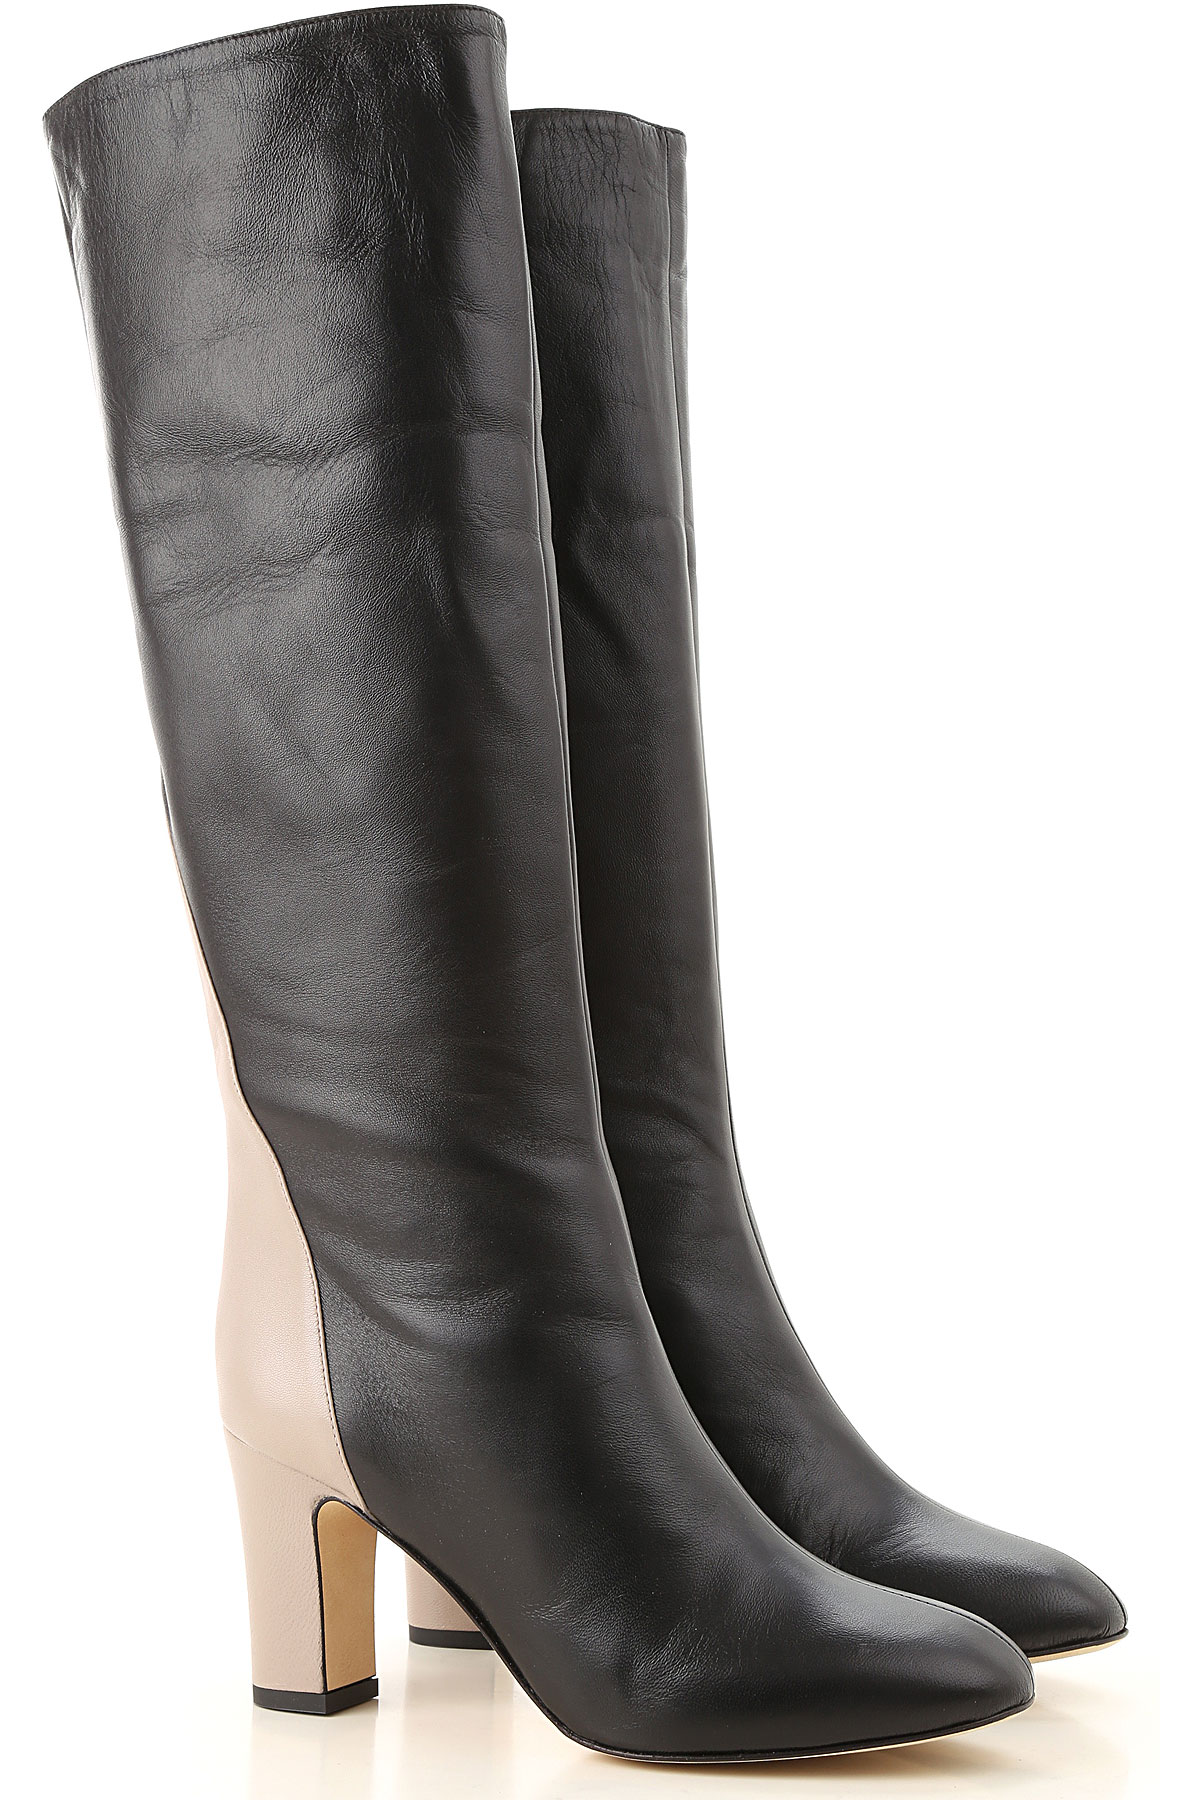 Image of Gia Couture Boots for Women, Booties, Black, Leather, 2017, 10 6 7 8 9